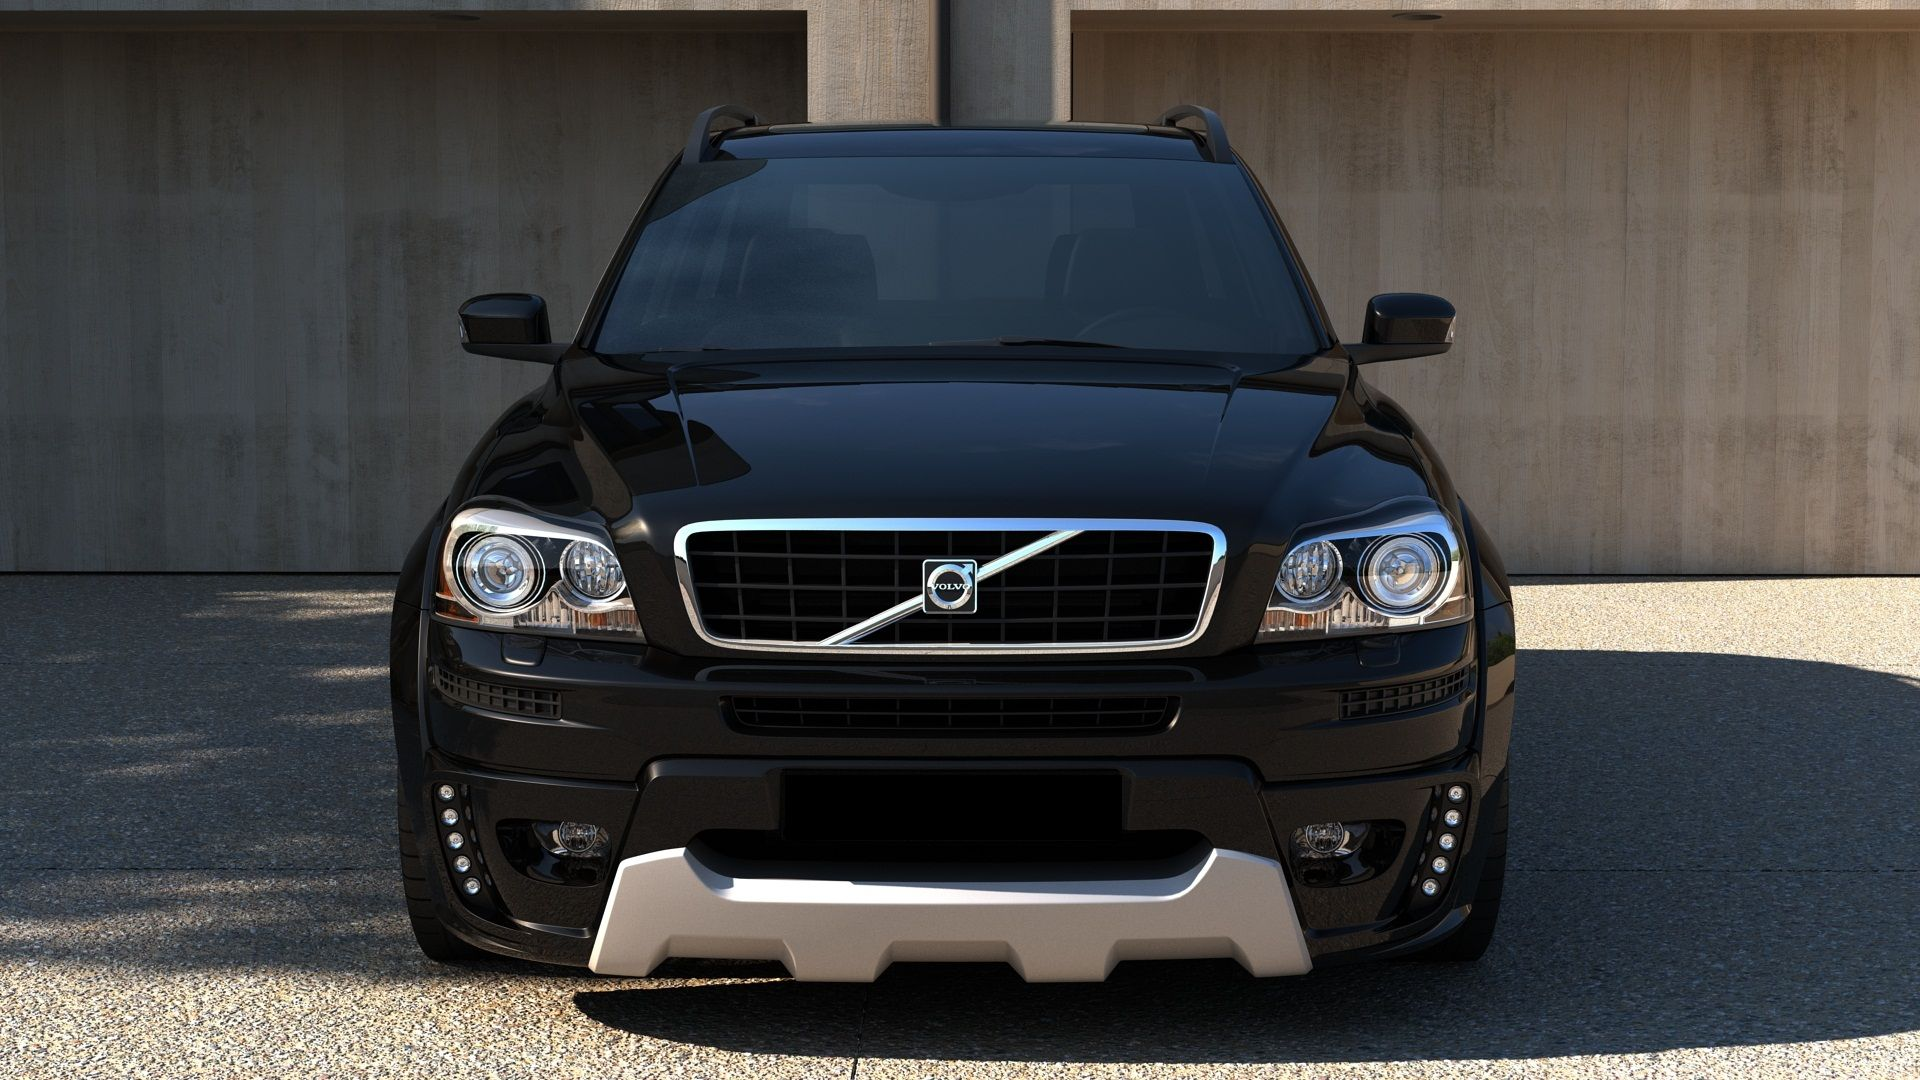 tricked out volvo xc90 [ 1920 x 1080 Pixel ]